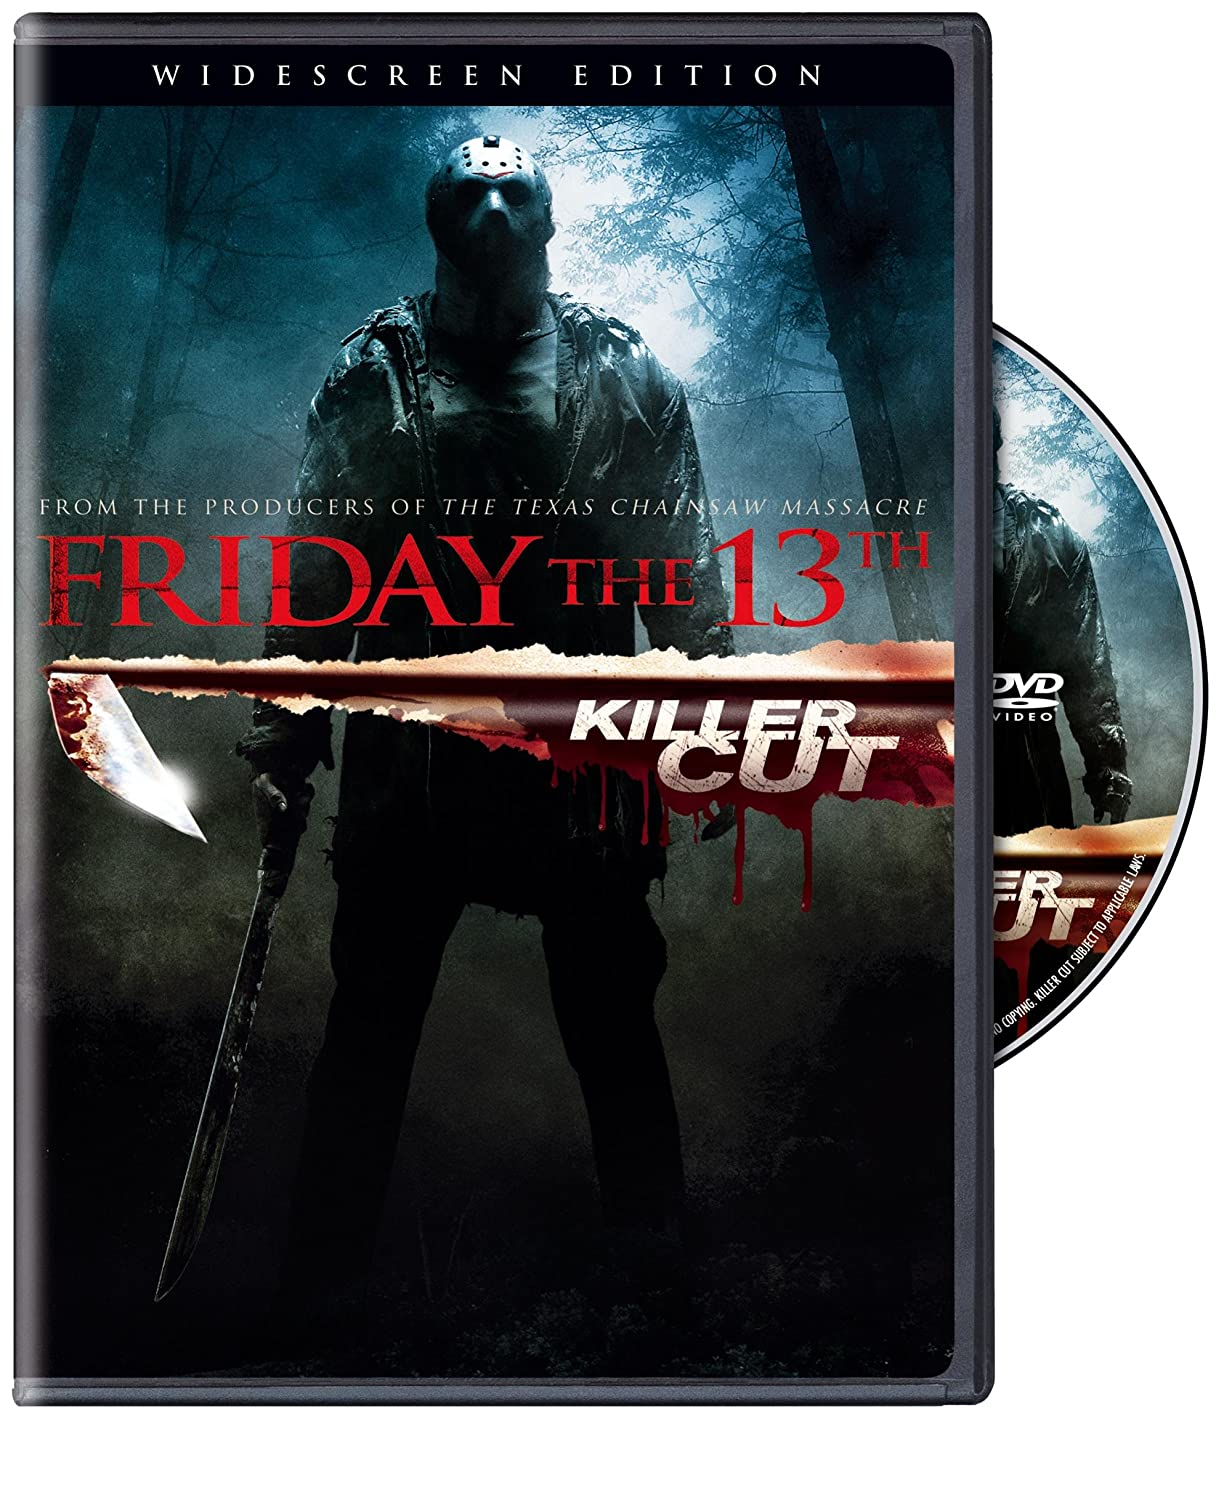 Friday the 13th (Killer Cut, Widescreen) Jared Padalecki Danielle Panabaker Amanda Righetti Travis Van Winkle